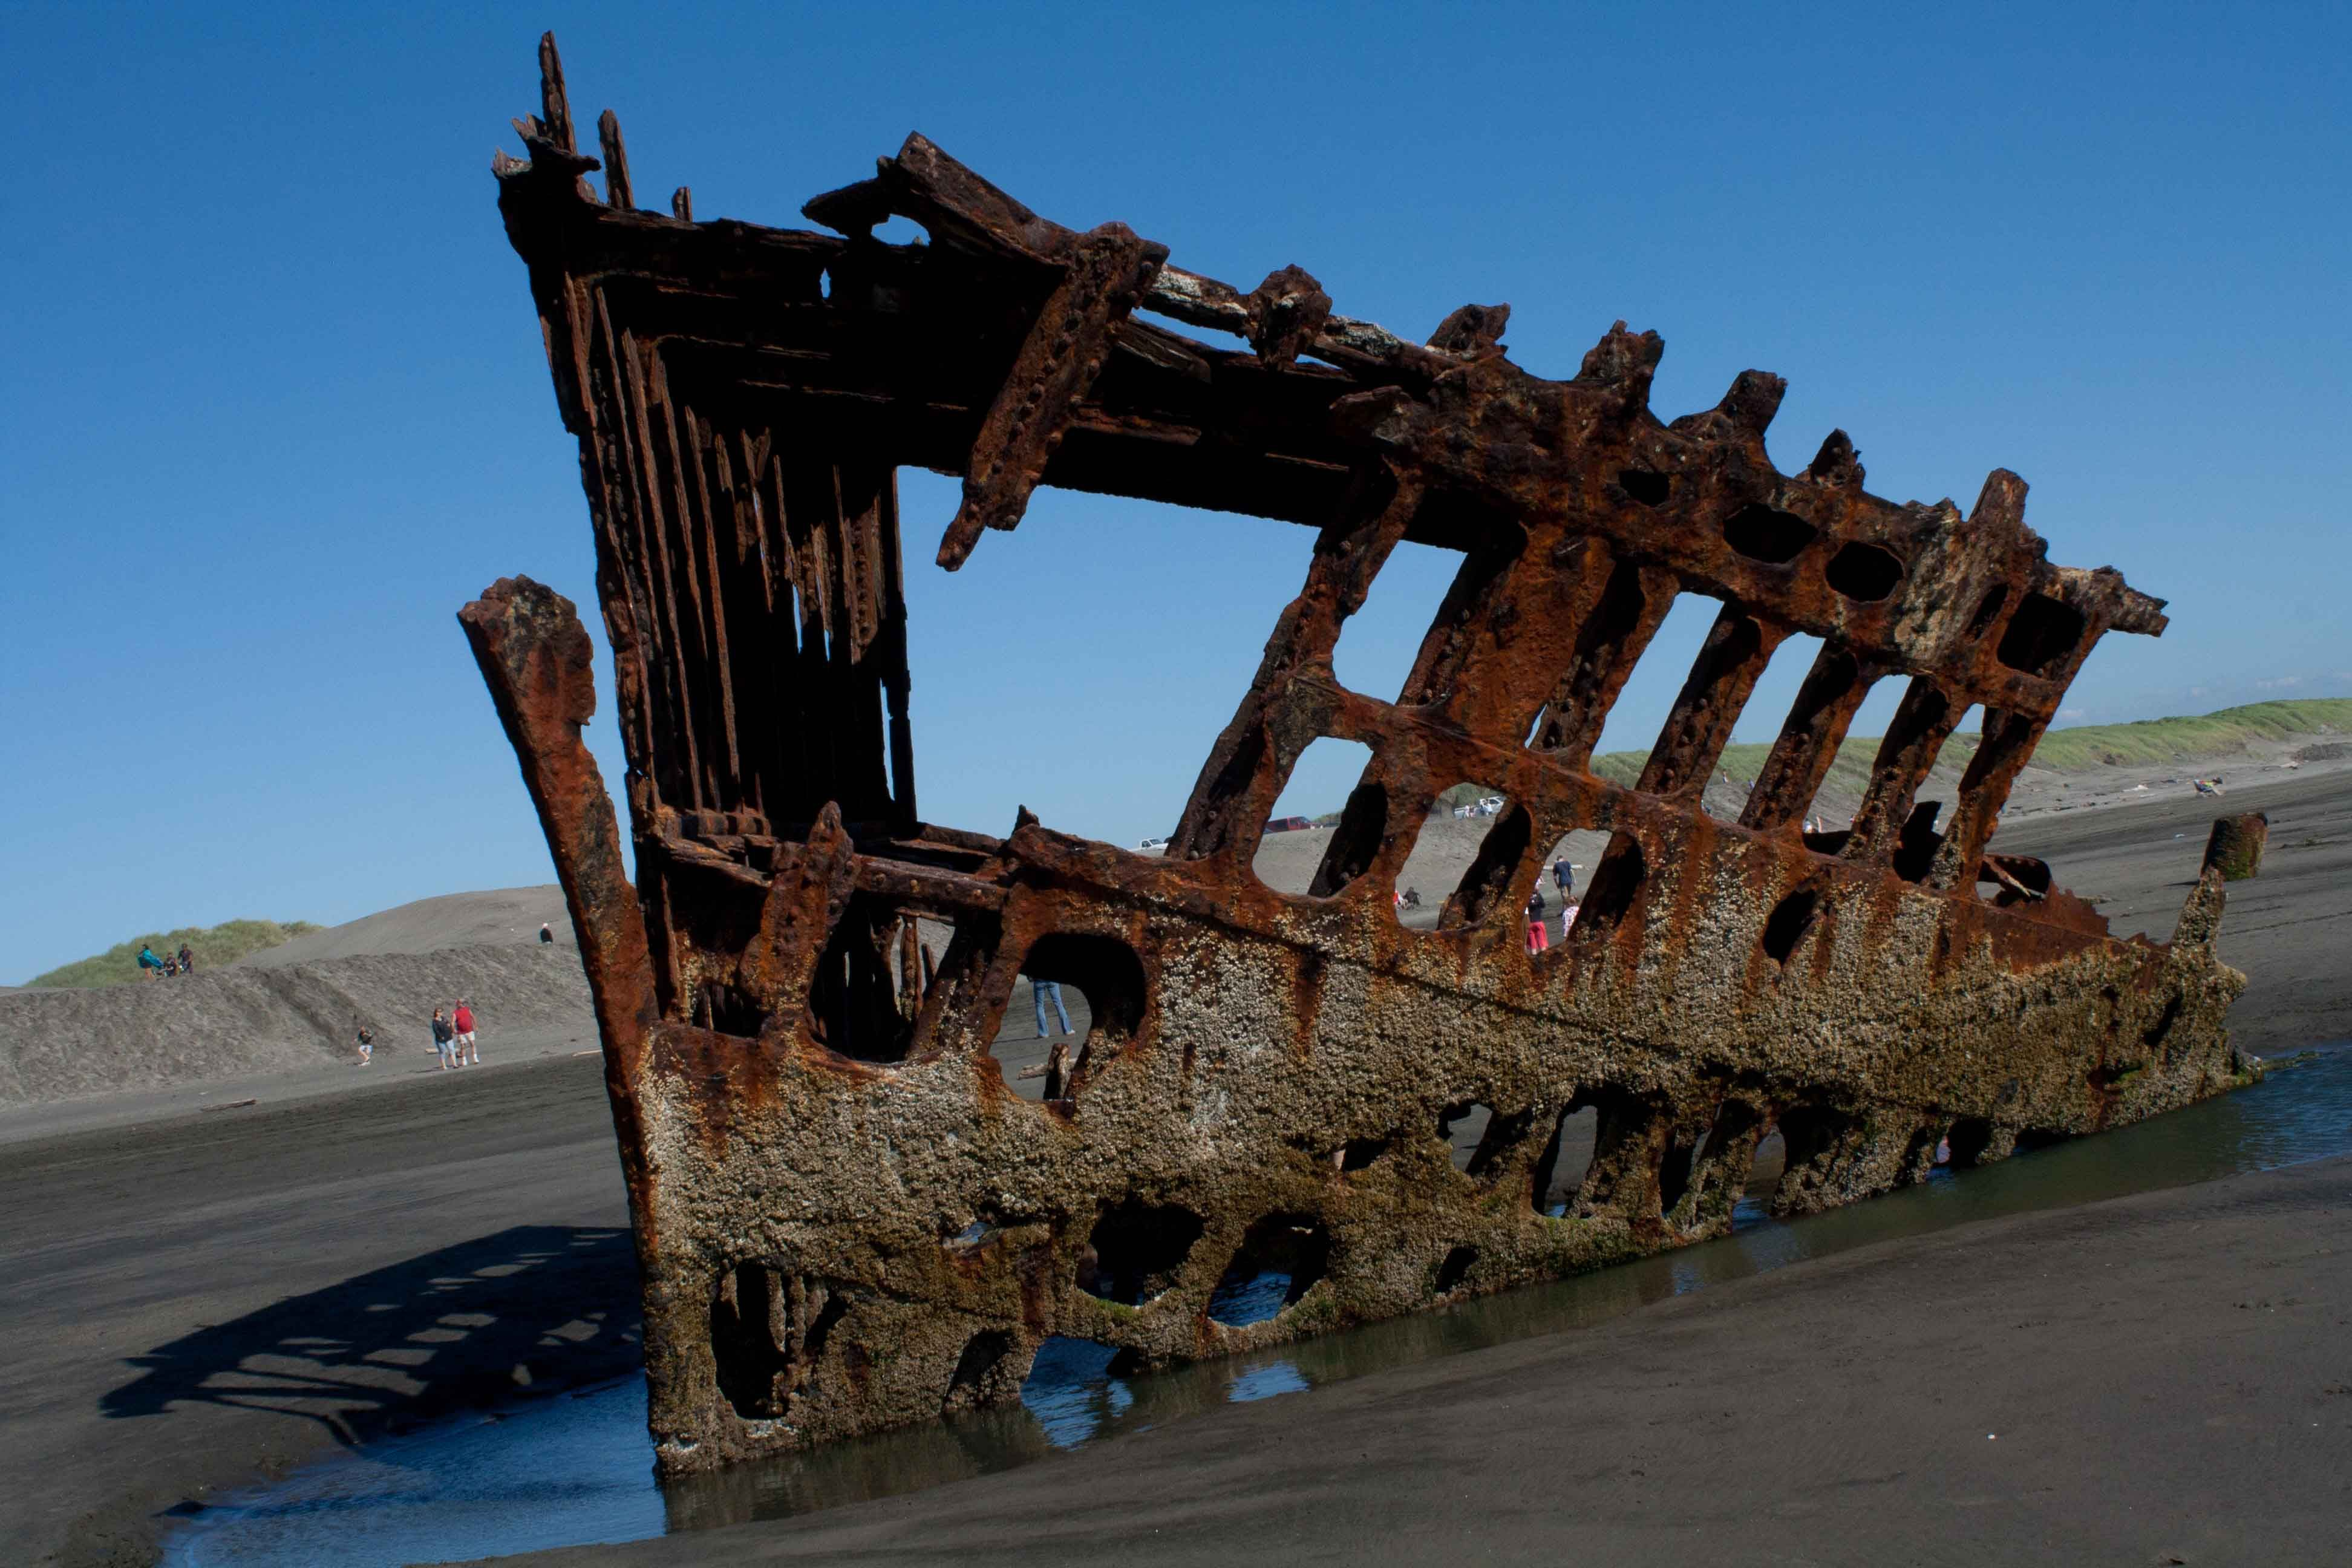 The Peter Iredale. one of the most noted ship wrecks along